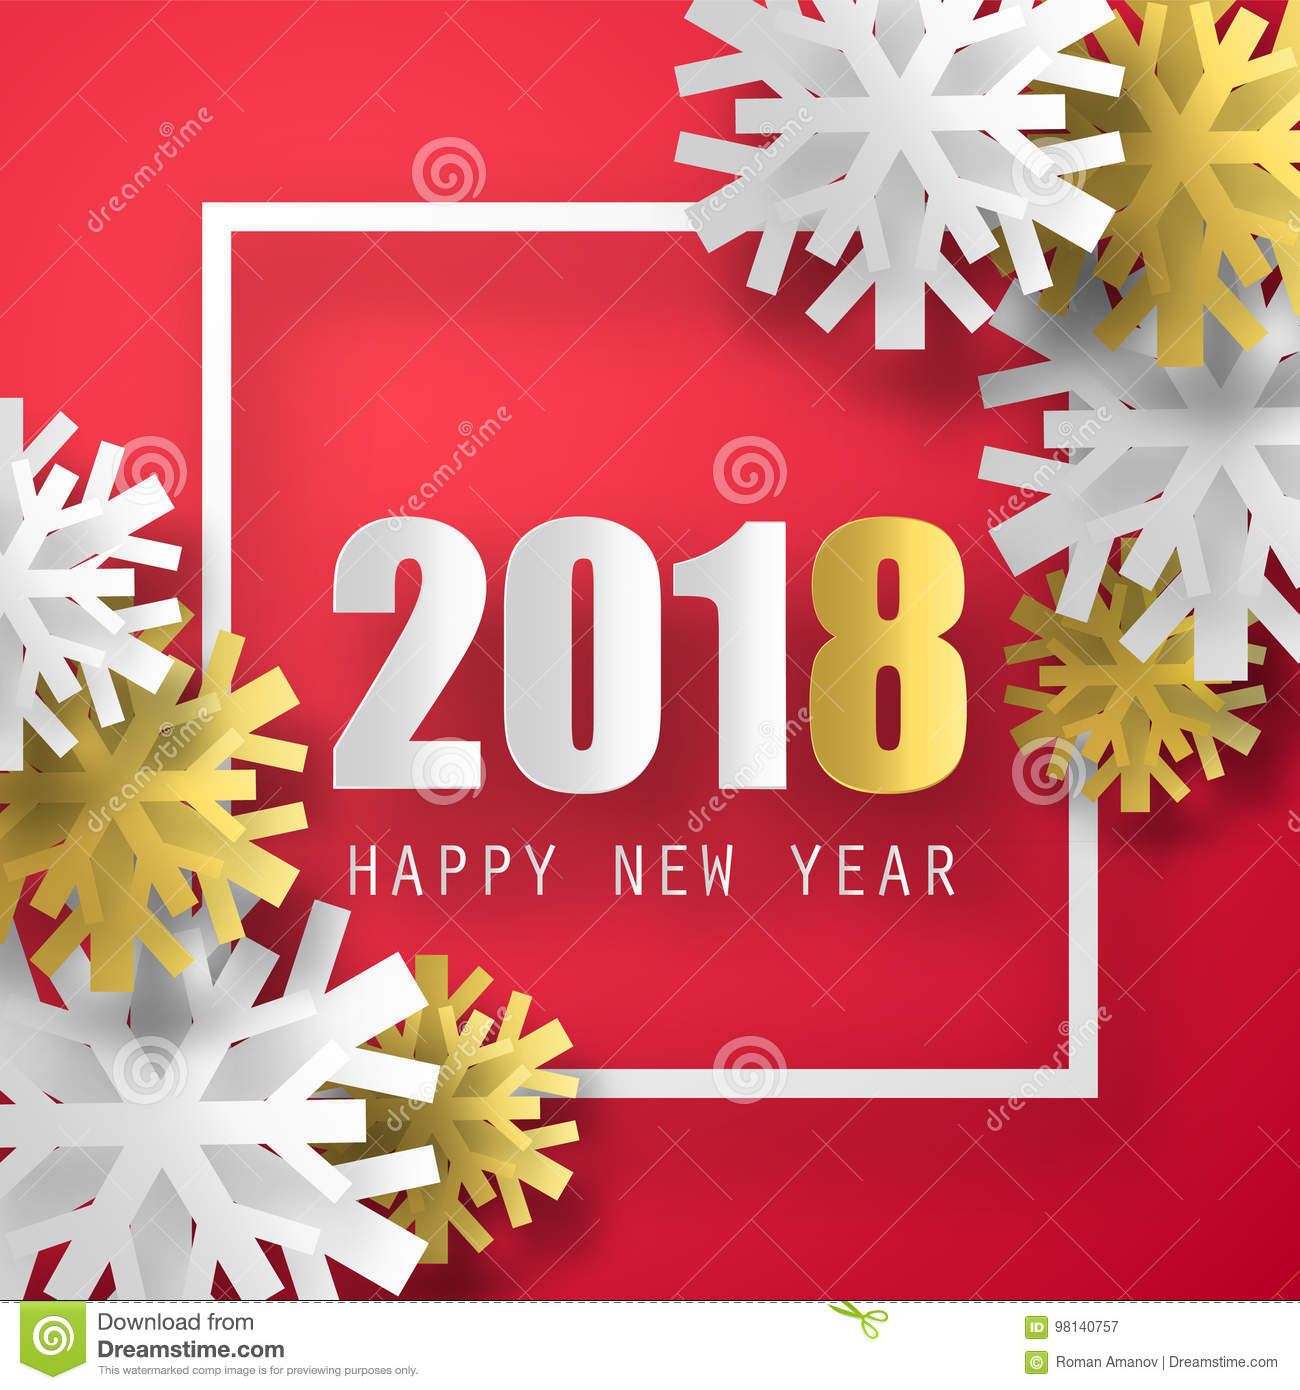 2018 vector background happy new year greeting card christmas happy new year greeting card with 3d snowflakes christmas poster m4hsunfo